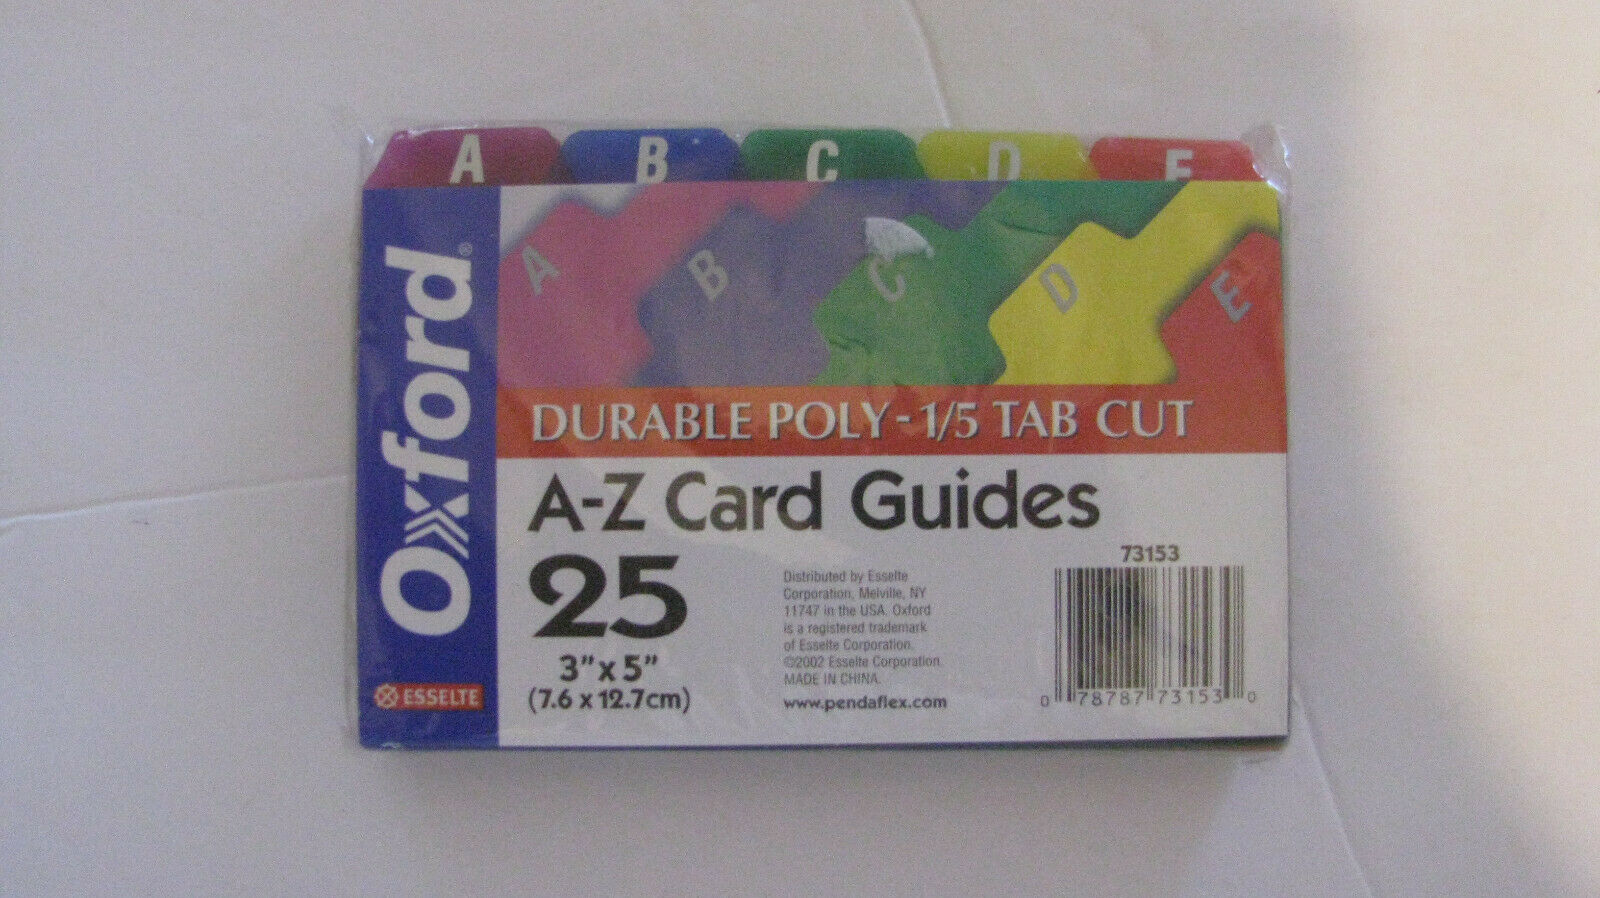 5 for sale online Esselte Ess-73153 A-z Durable 1//5 Cut Tab Poly Card Guide